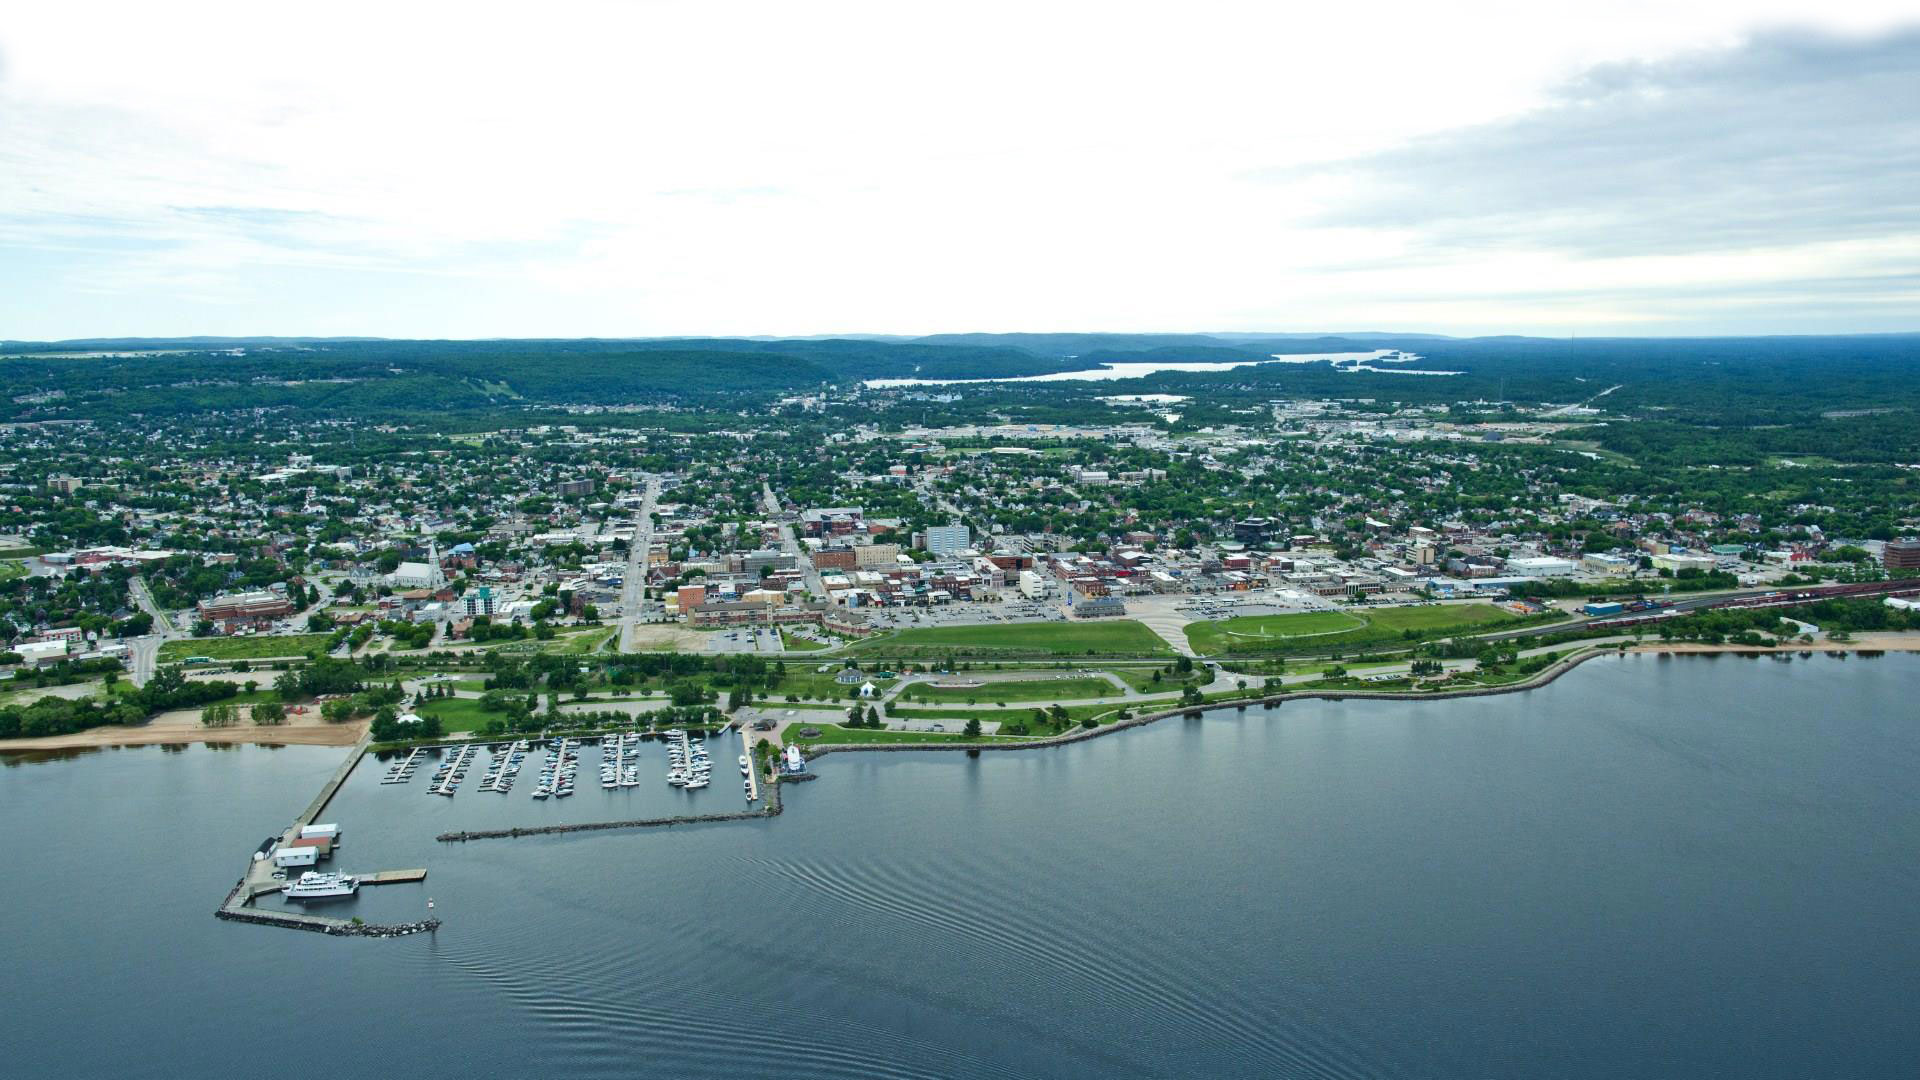 Beautiful City of North Bay, Ontario